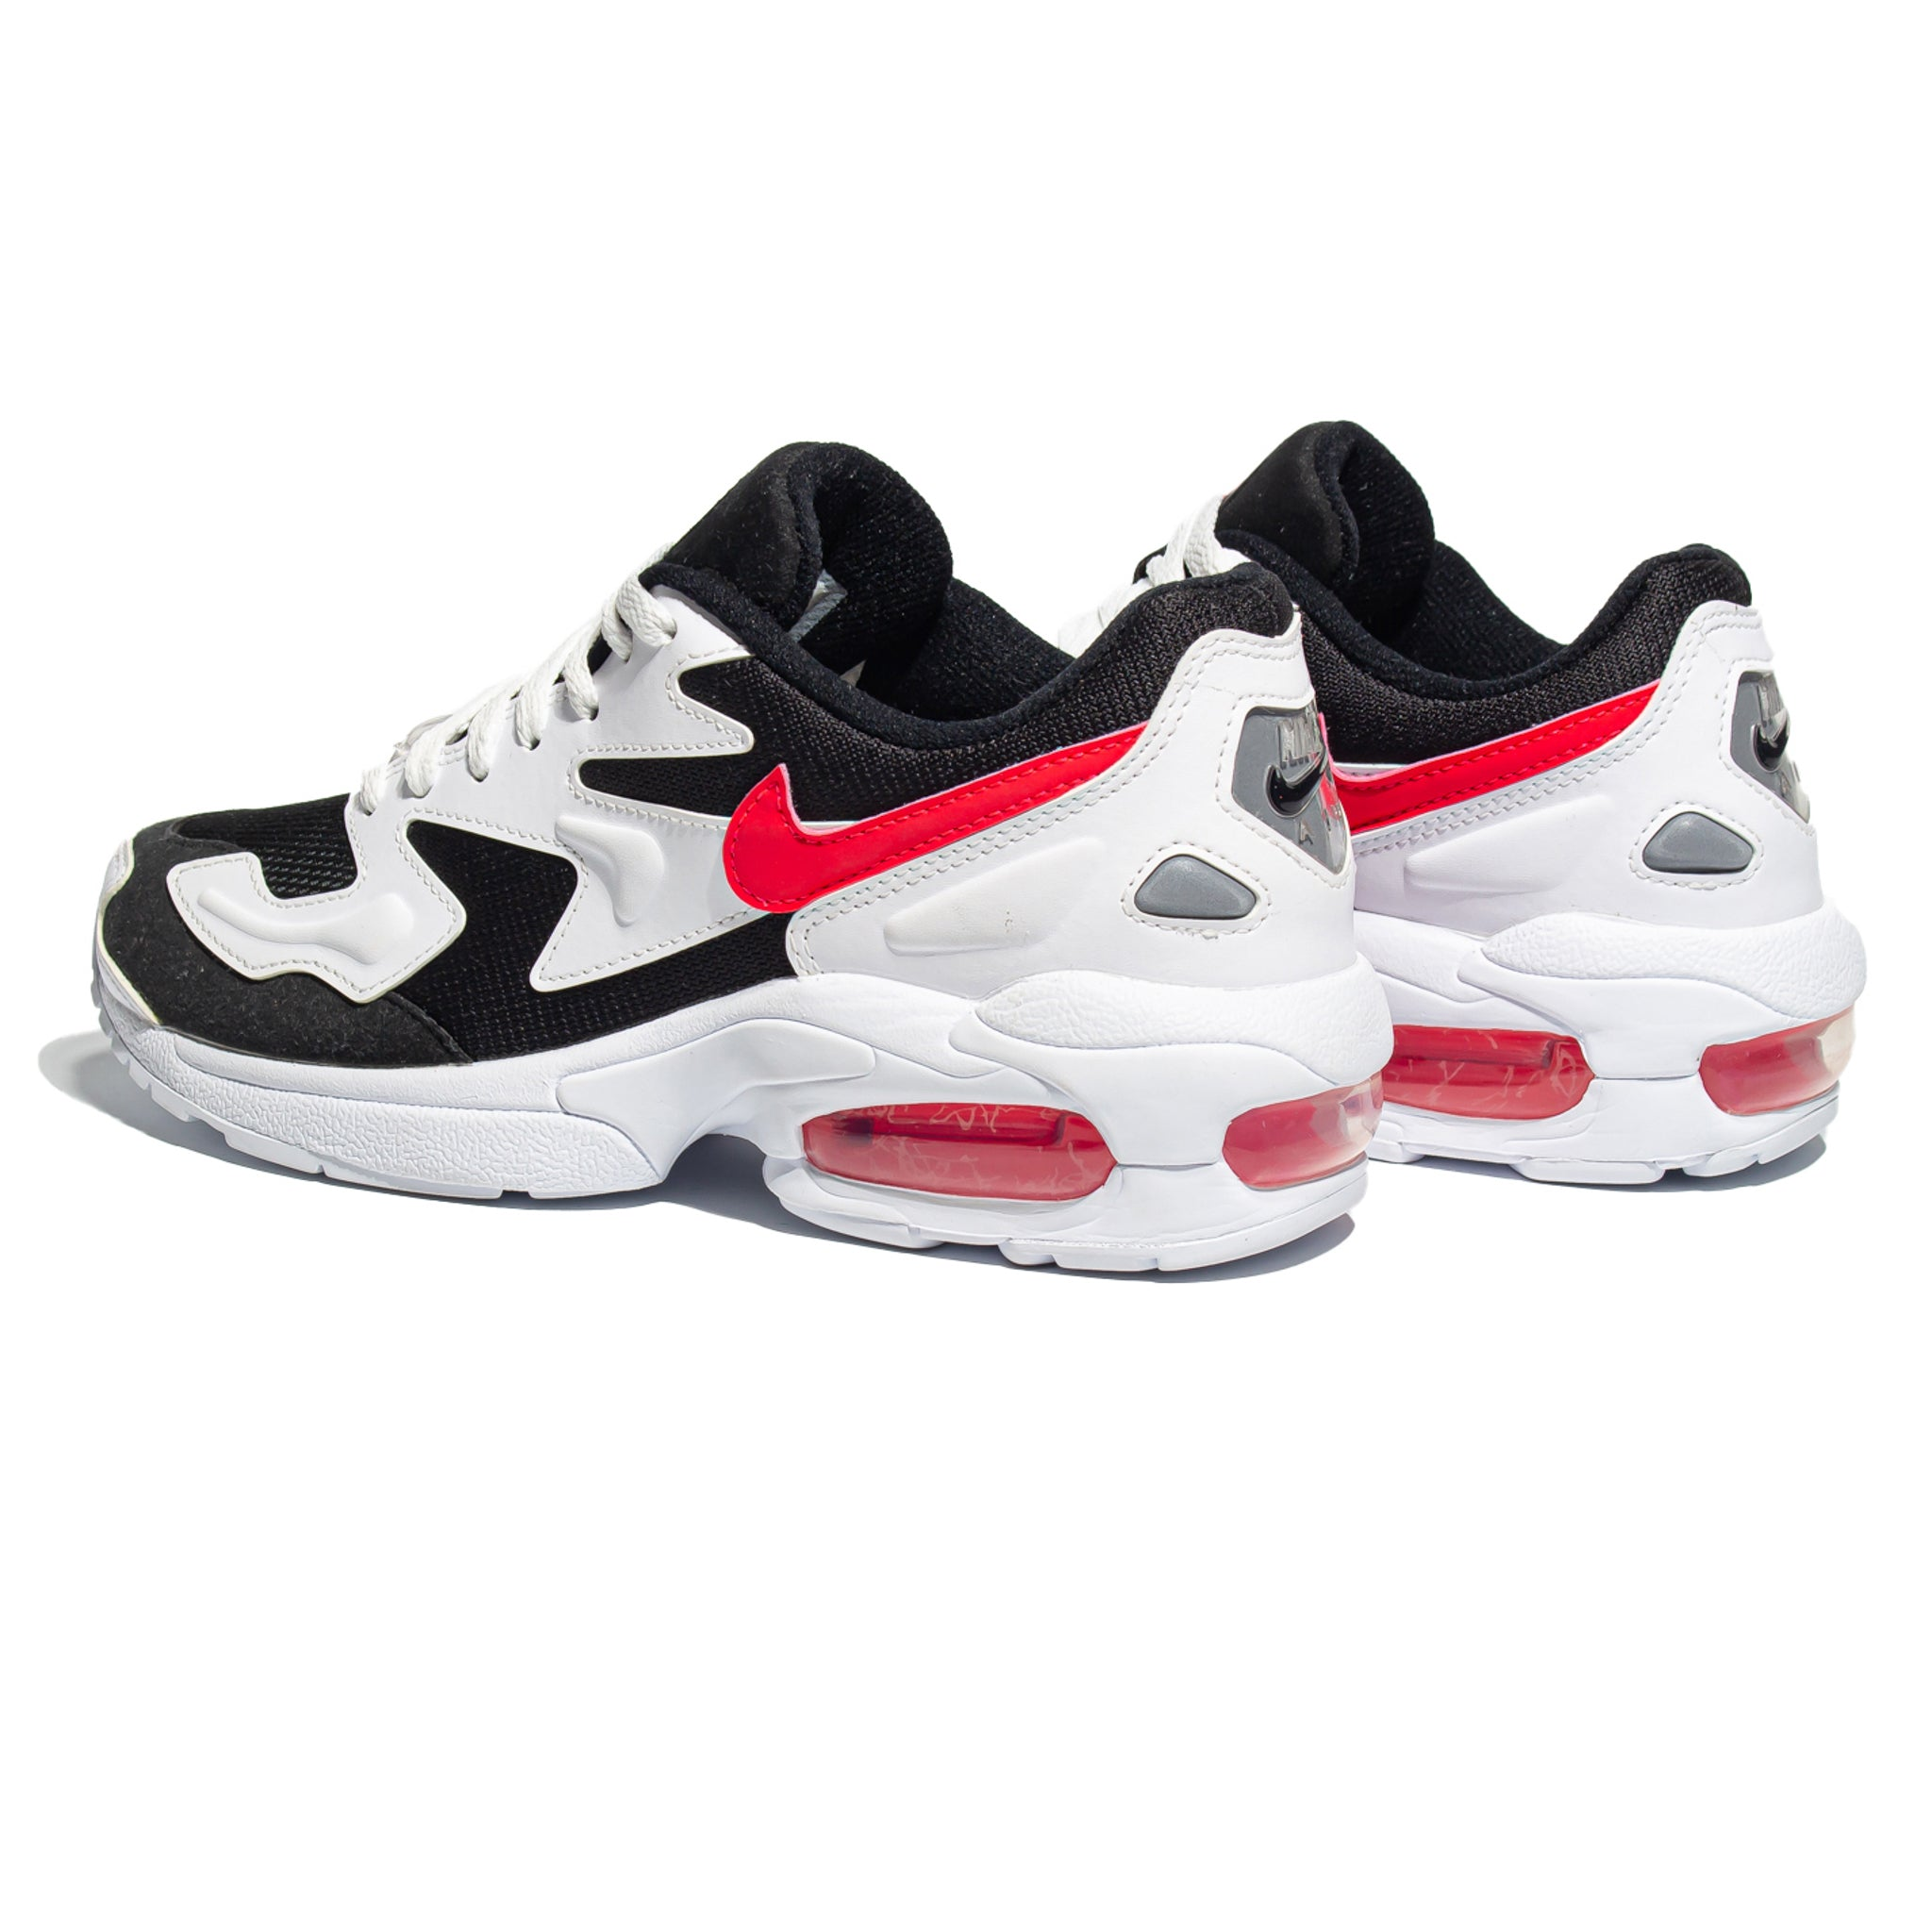 Nike Air Max2 Light 'White/Red Orbit'